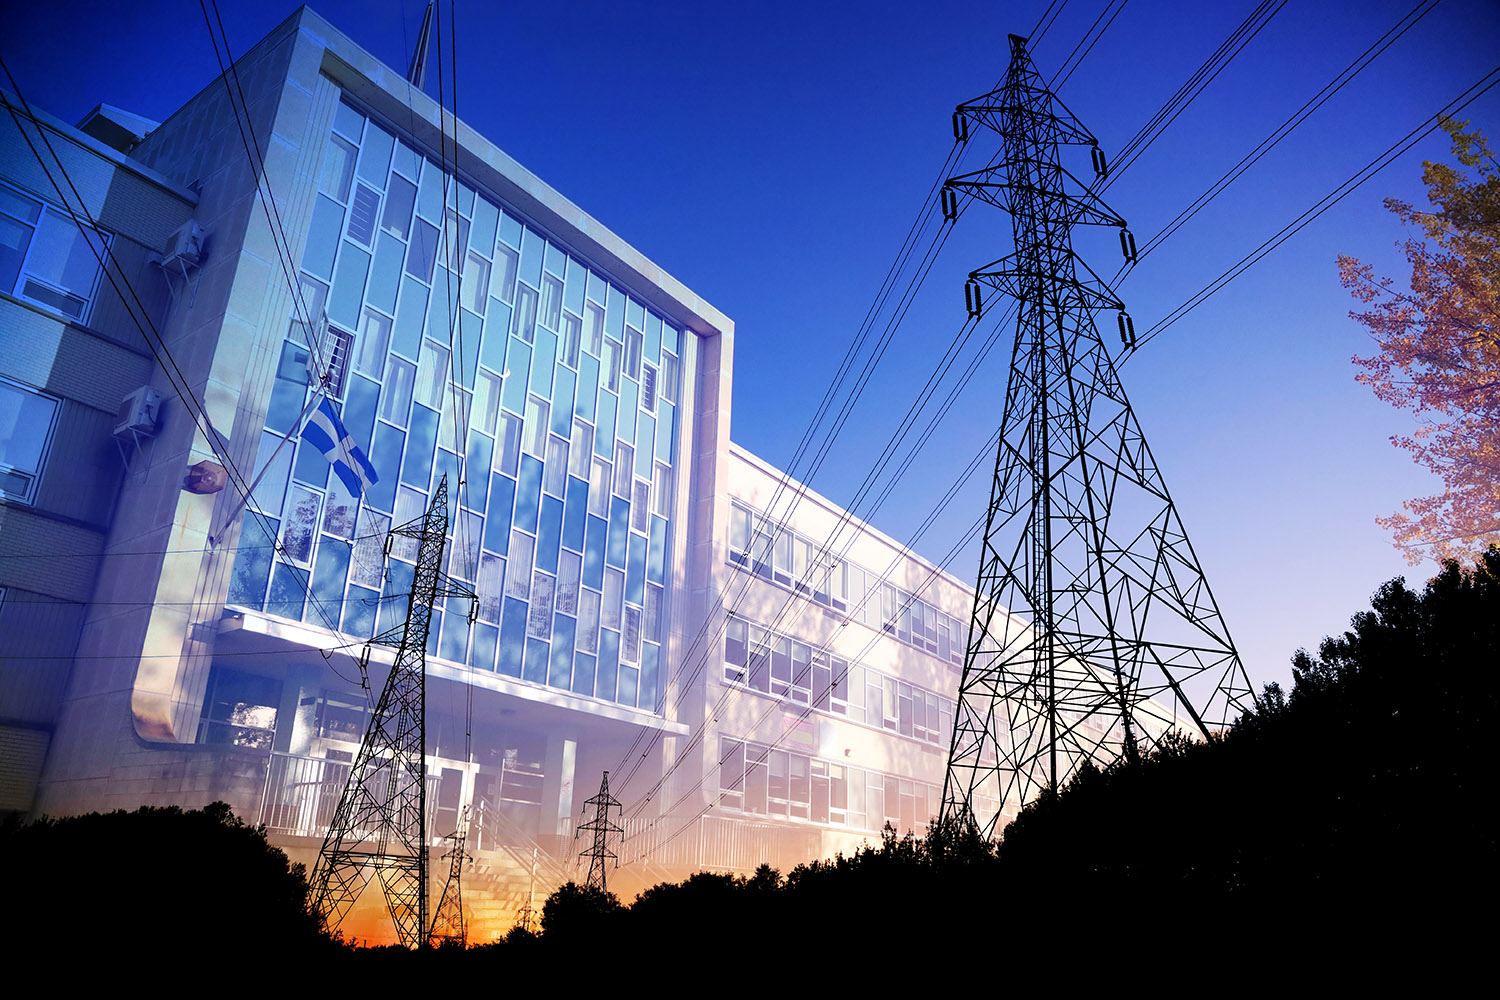 Commercial and Public Building Energy Efficiency - RF Stock Image